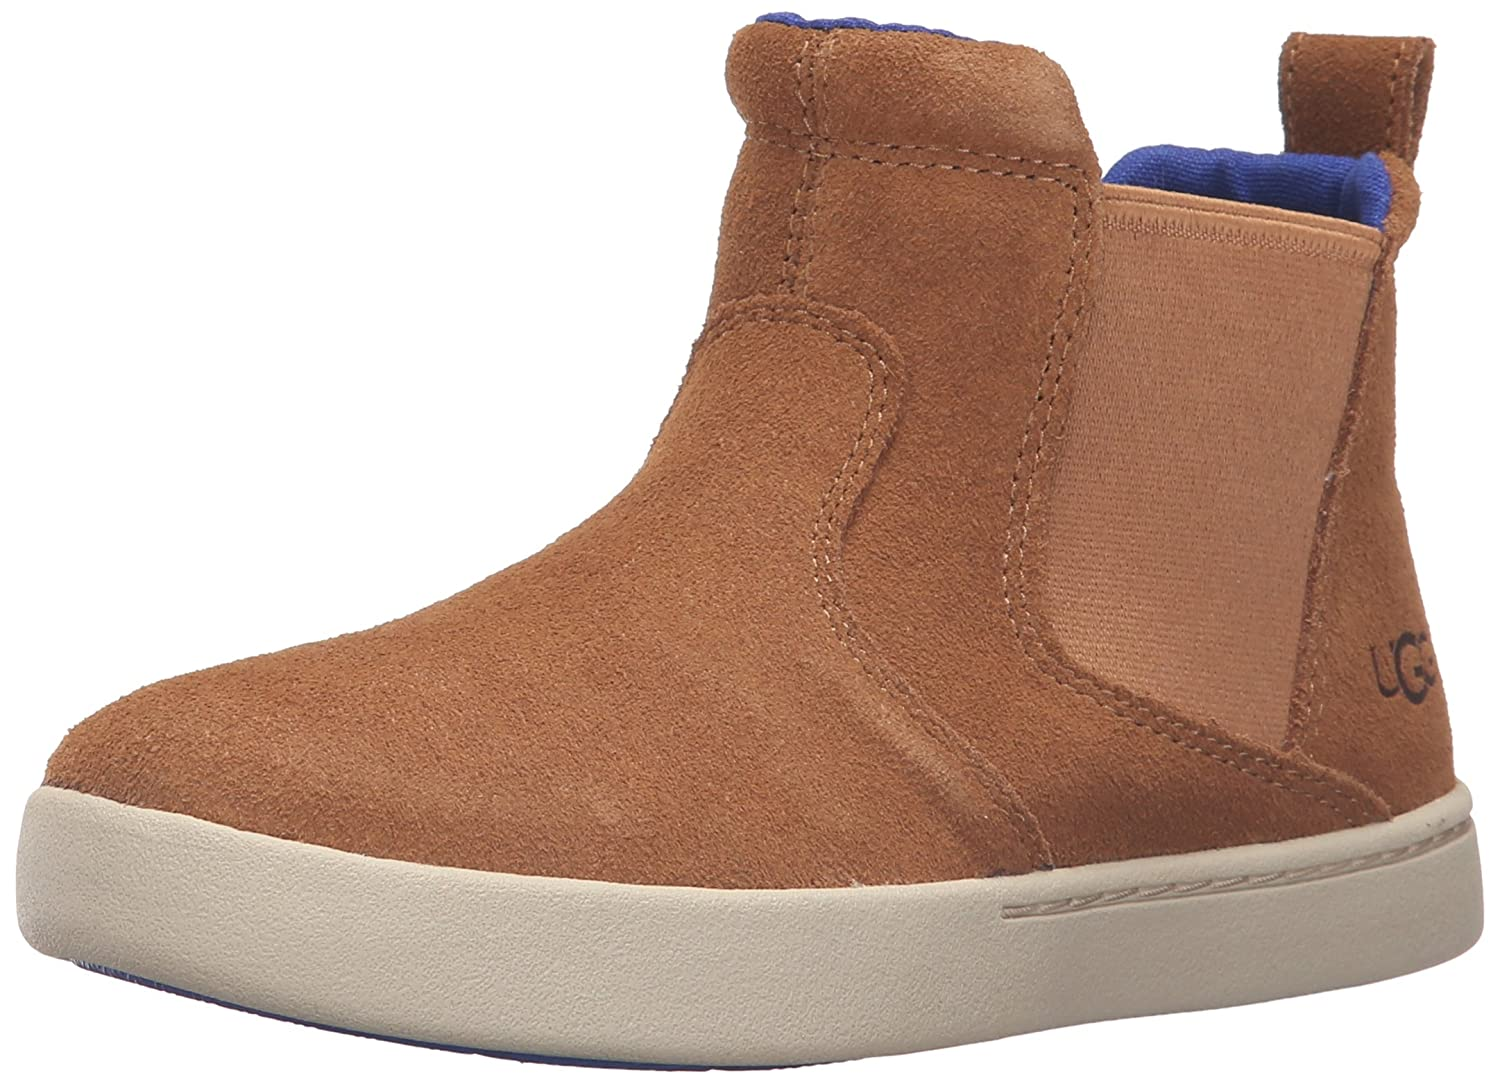 UGG Kids' K Hamden Slip-On 1012395K